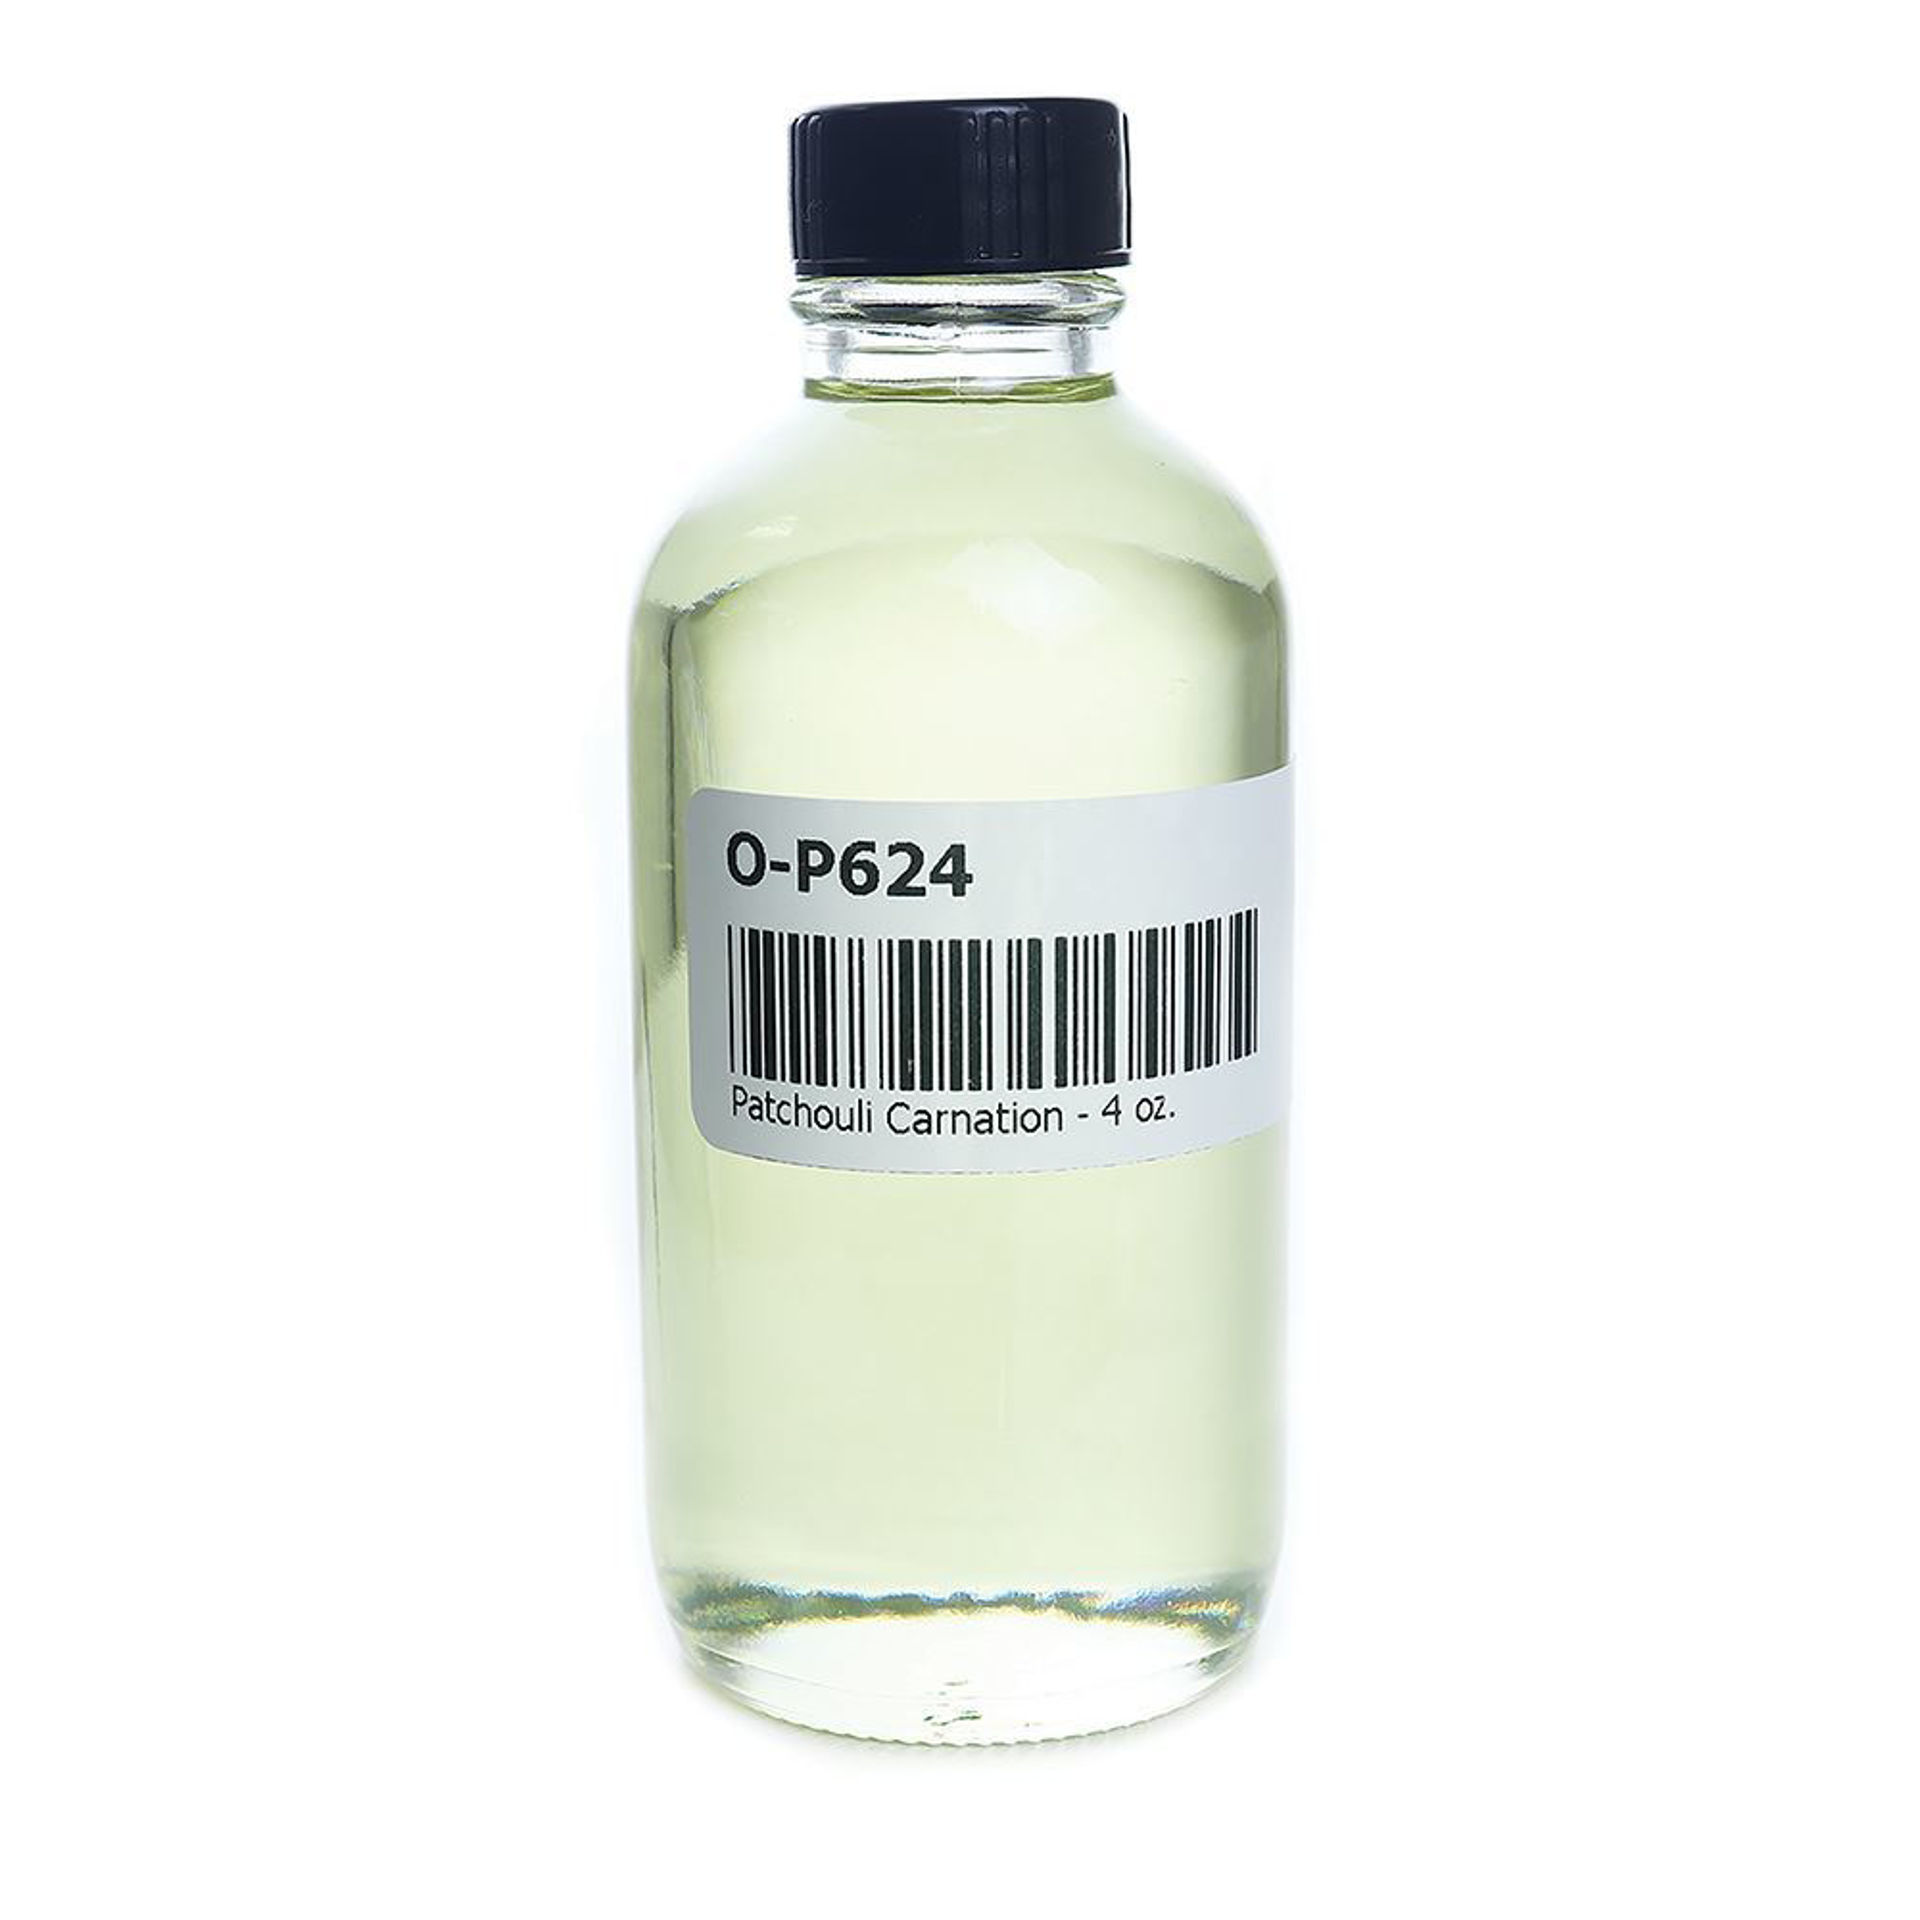 Picture of Patchouli Carnation - 4 oz.